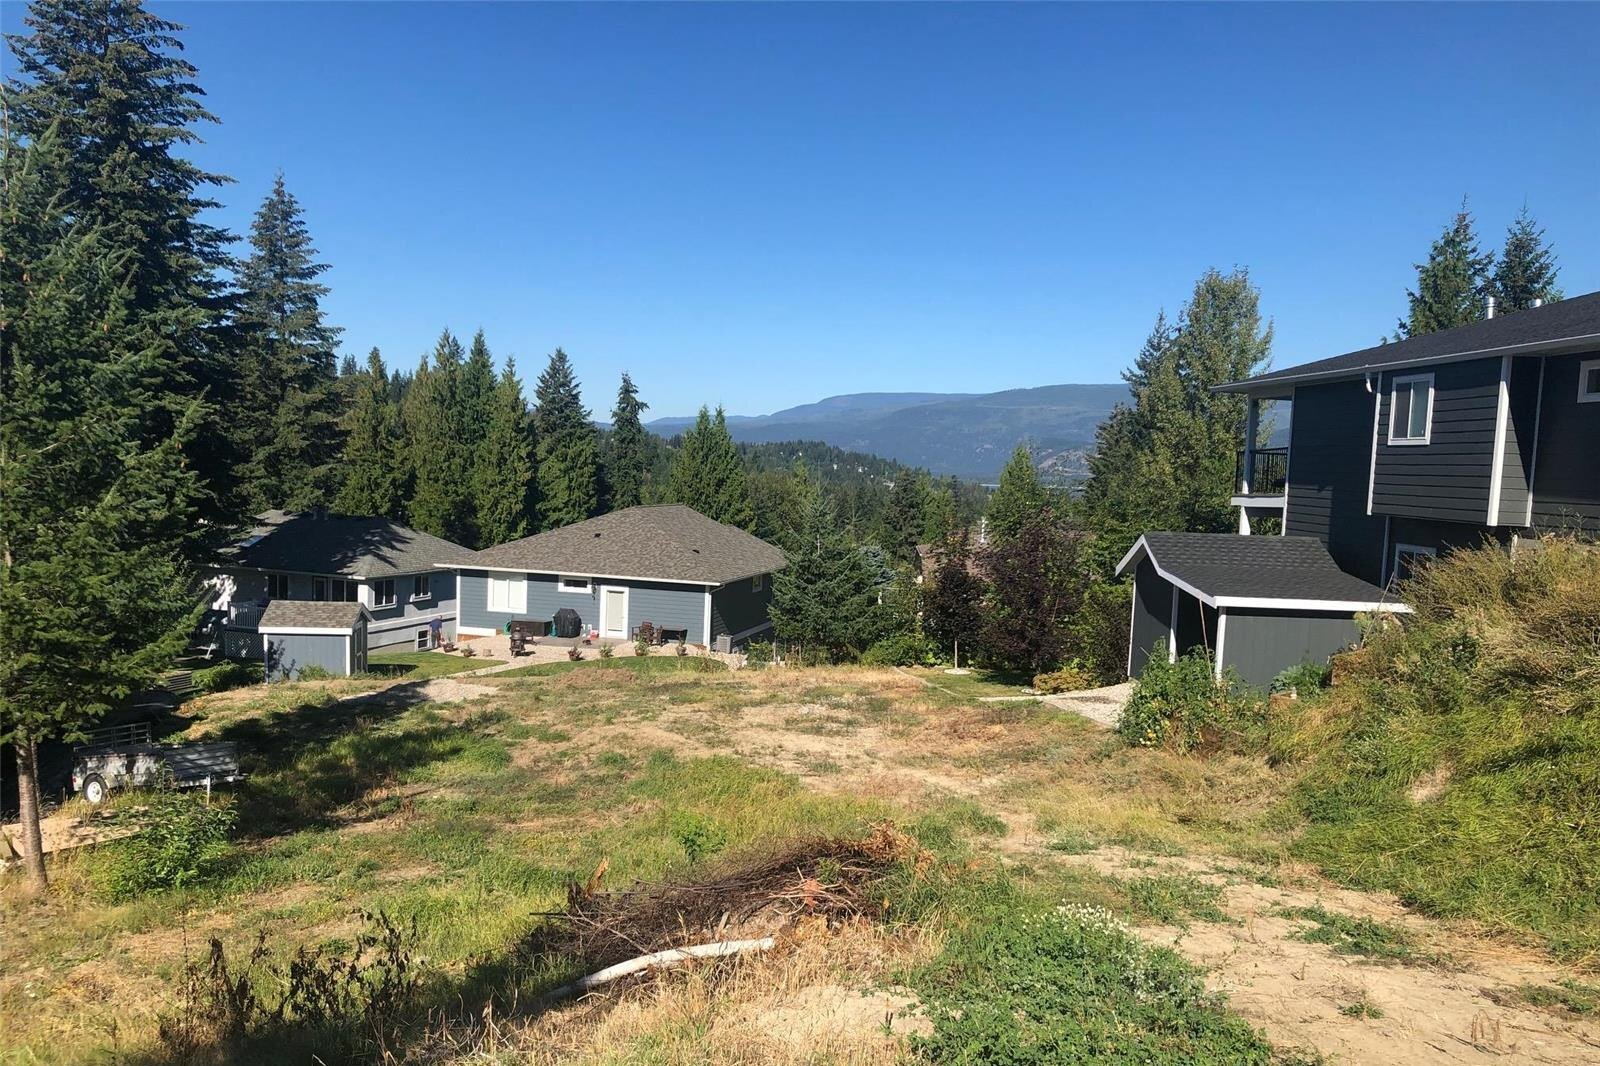 Home for sale at 2592 Alpen Paradies Rd Unit SL 37 Blind Bay British Columbia - MLS: 10215042